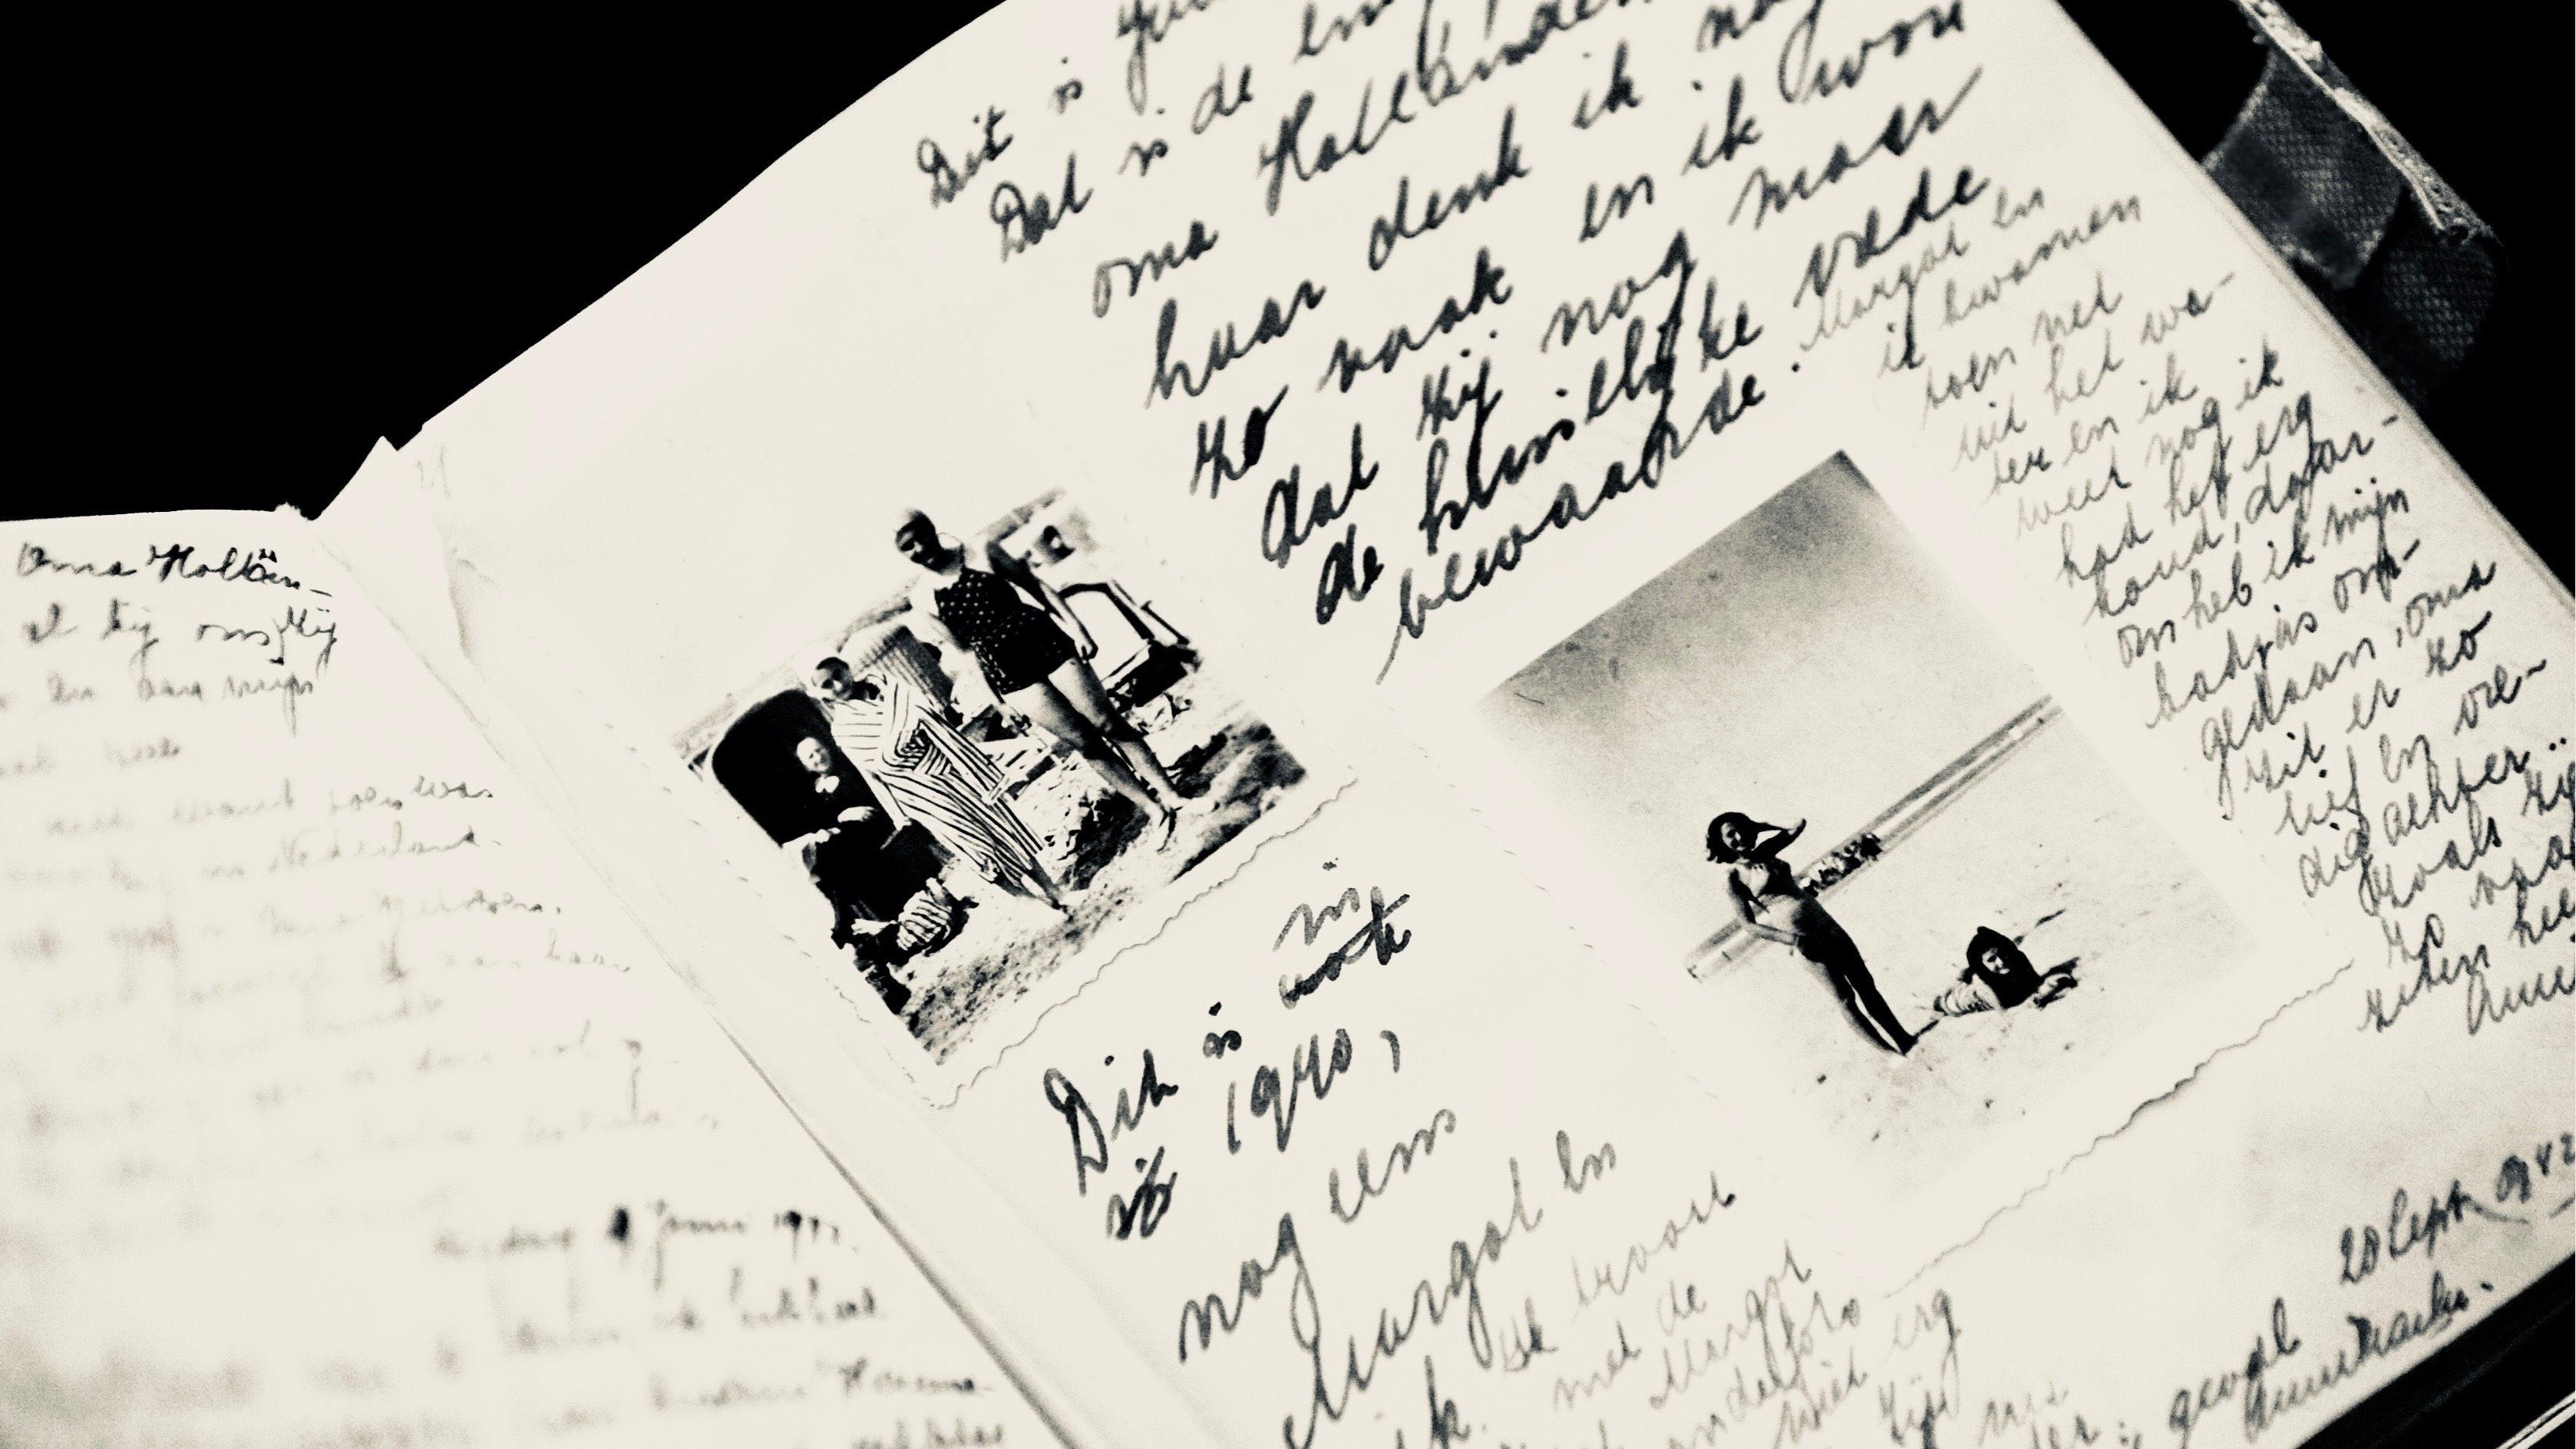 Pages from Anne Frank's diary.